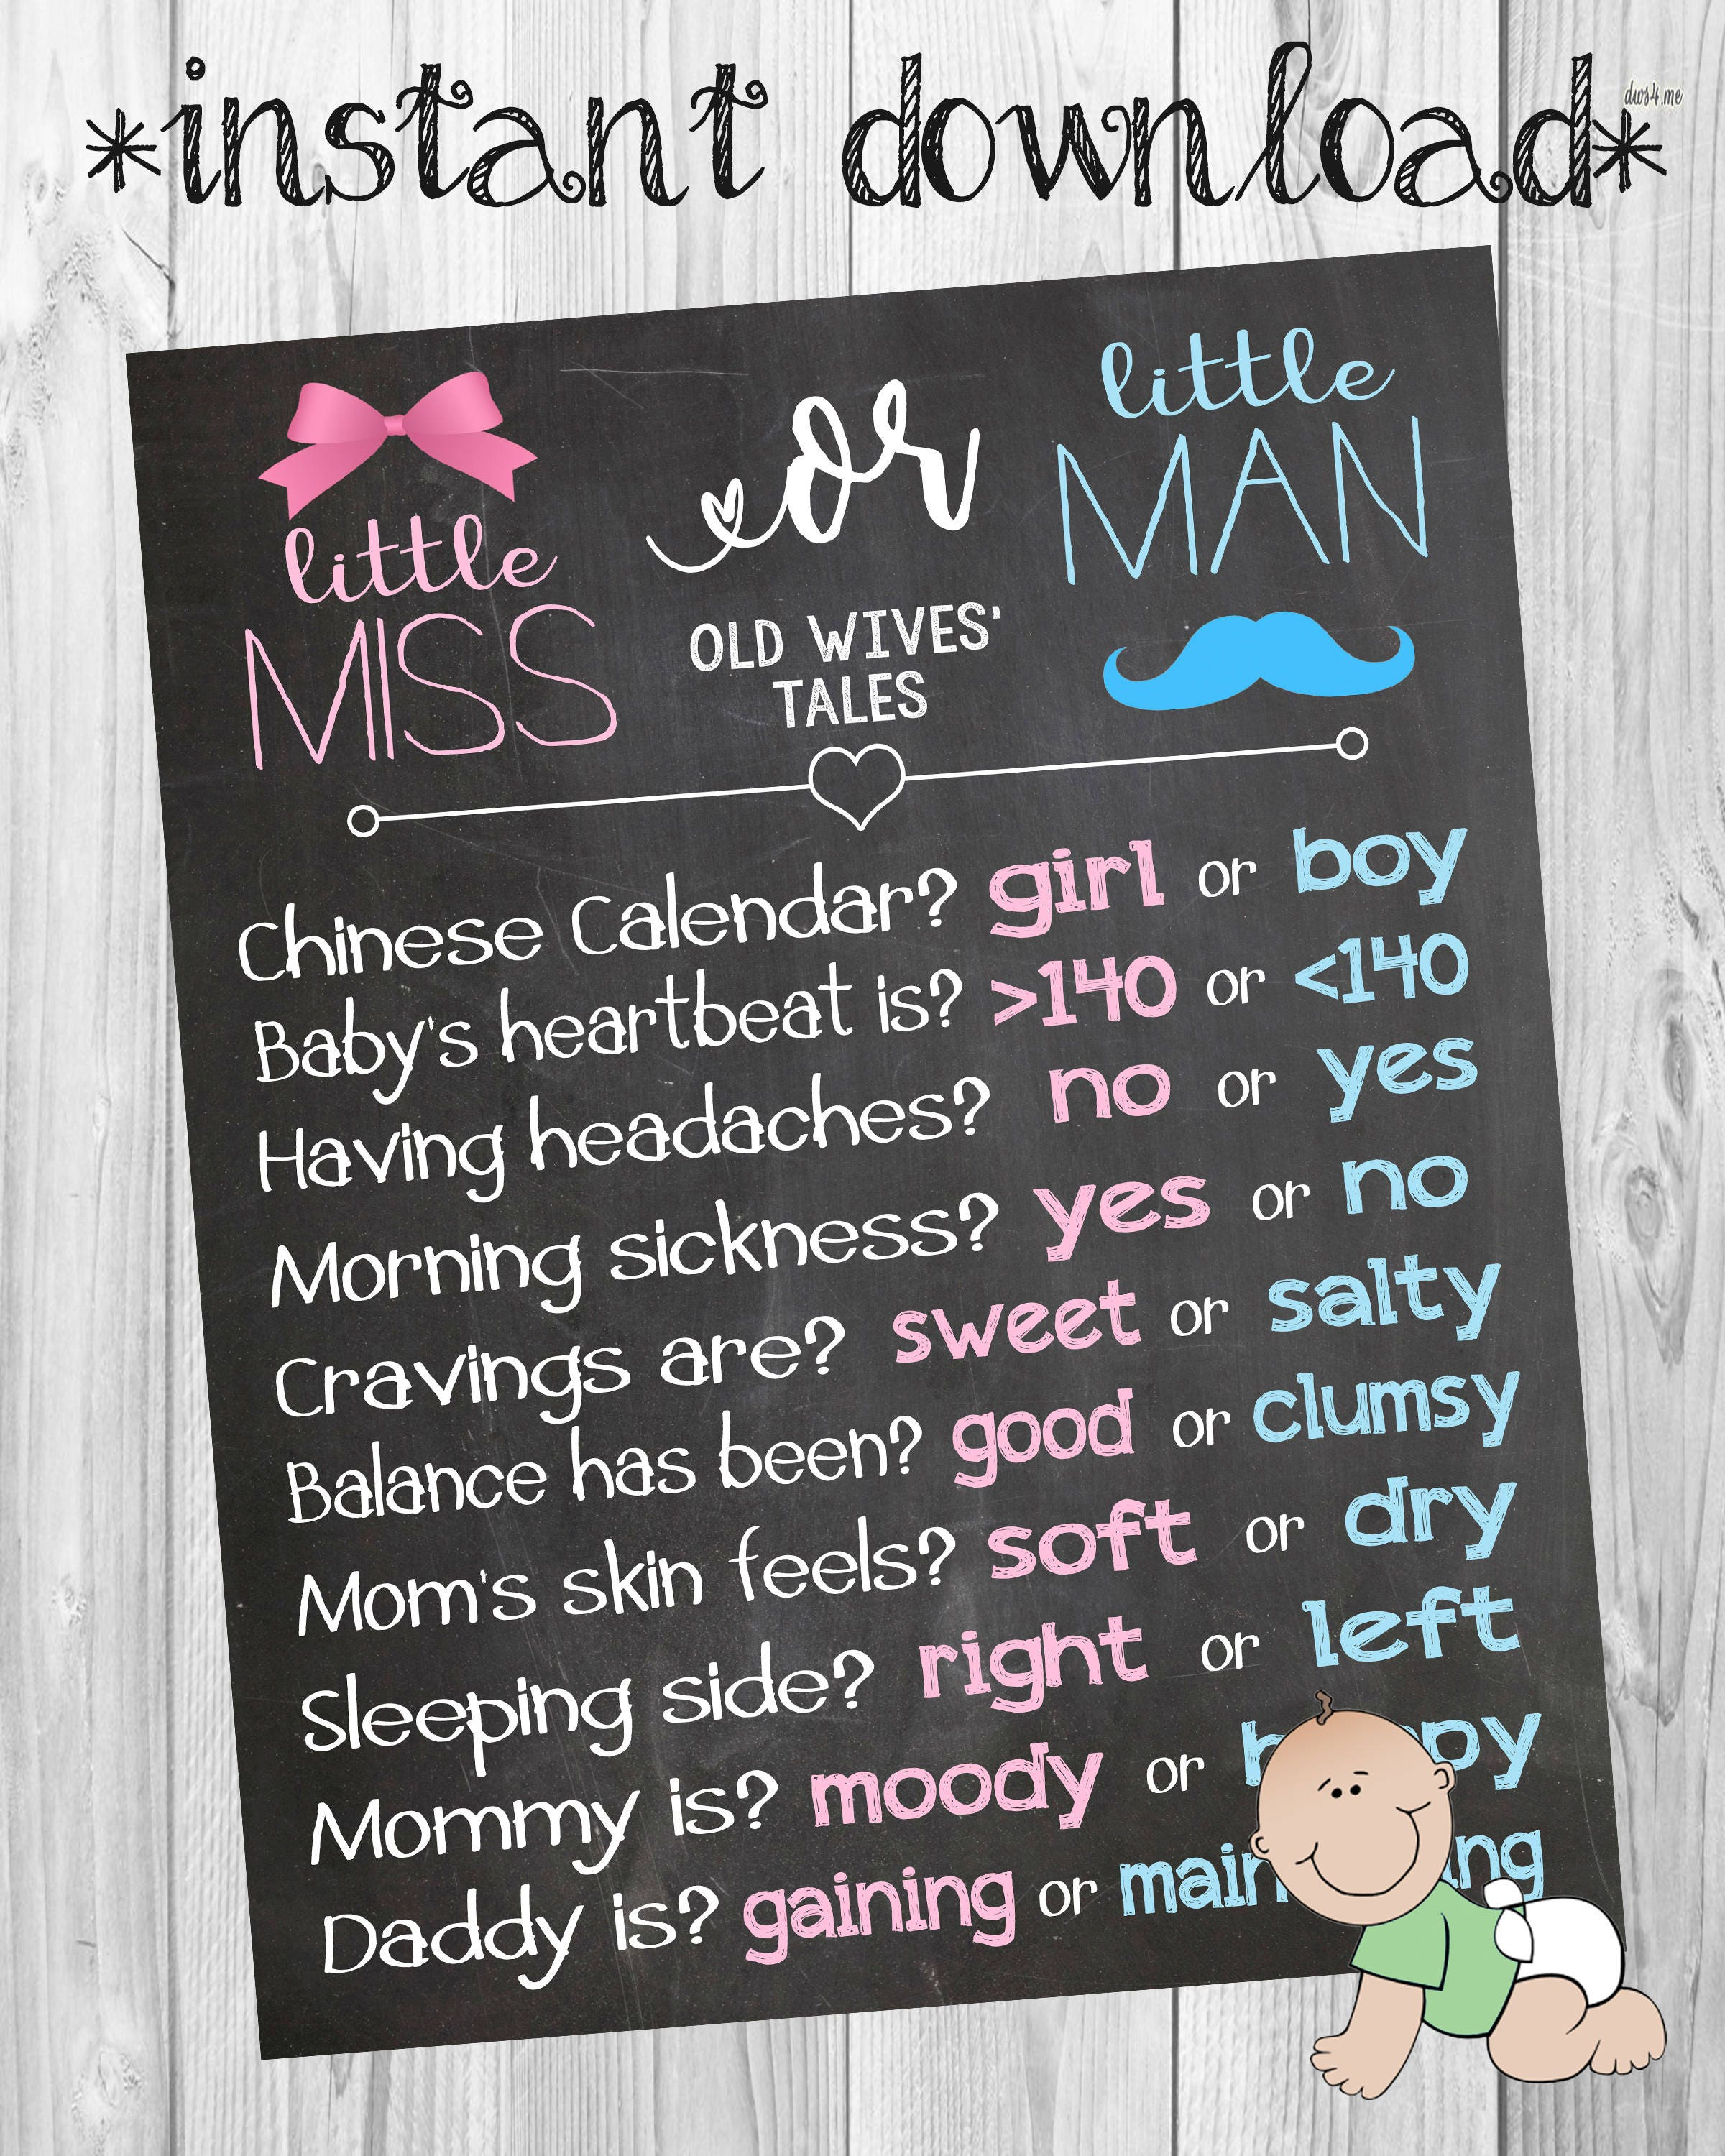 Gender reveal party gender reveal ideas Little miss or